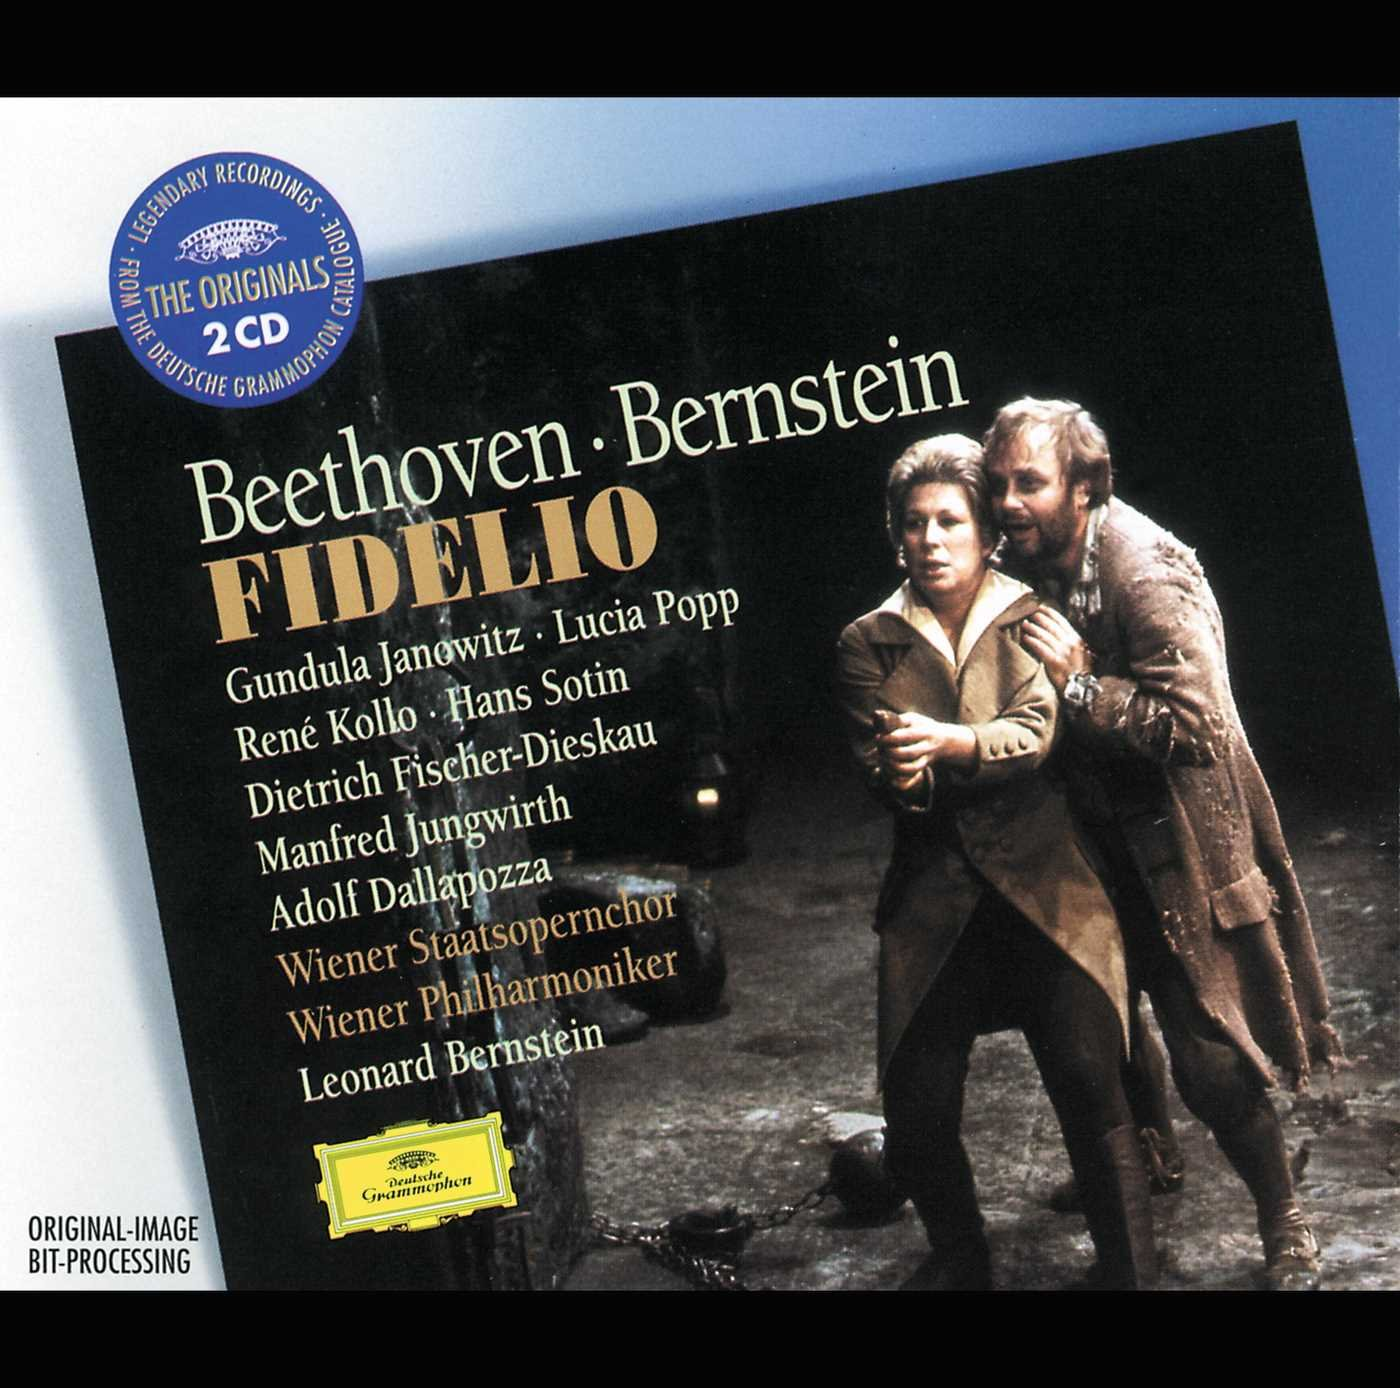 CD : Leonard Bernstein - Fidelio (2PC)